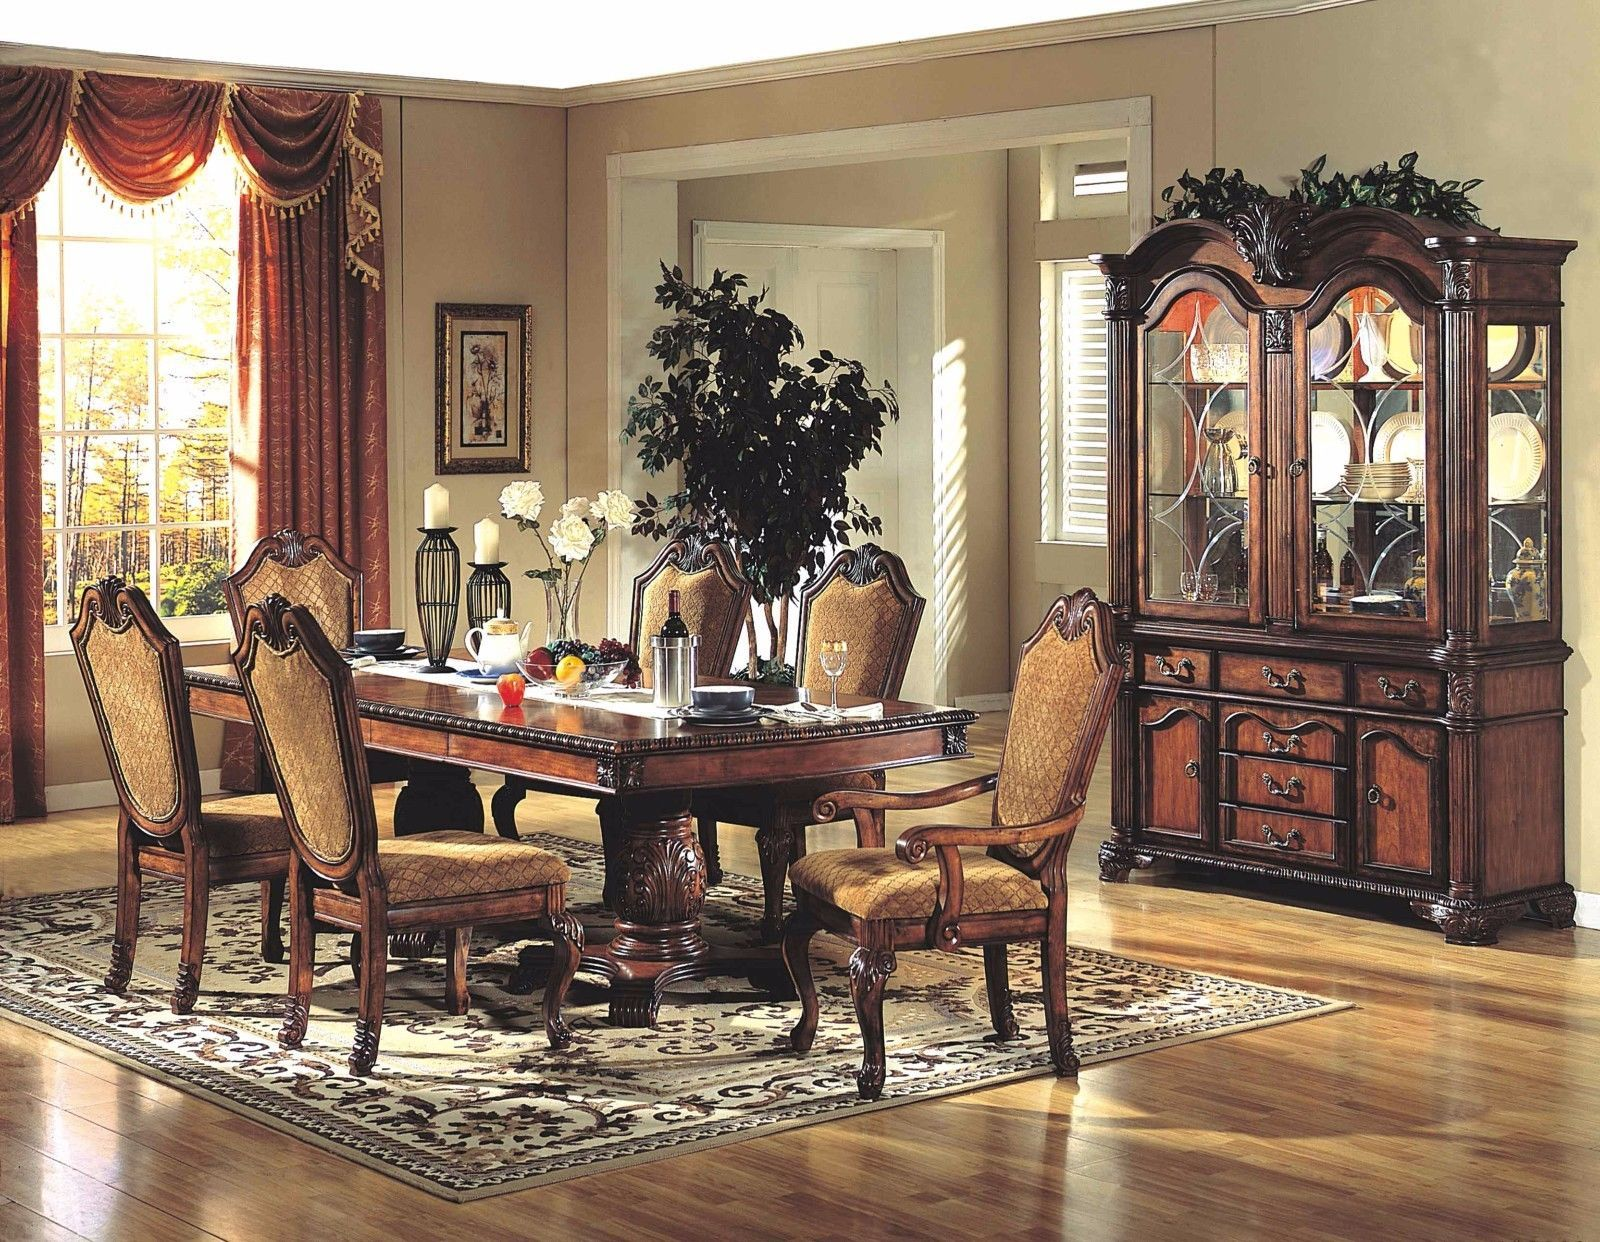 Mcferran RD5006 Dining Room Set 5pc. Furnishings Traditional Style